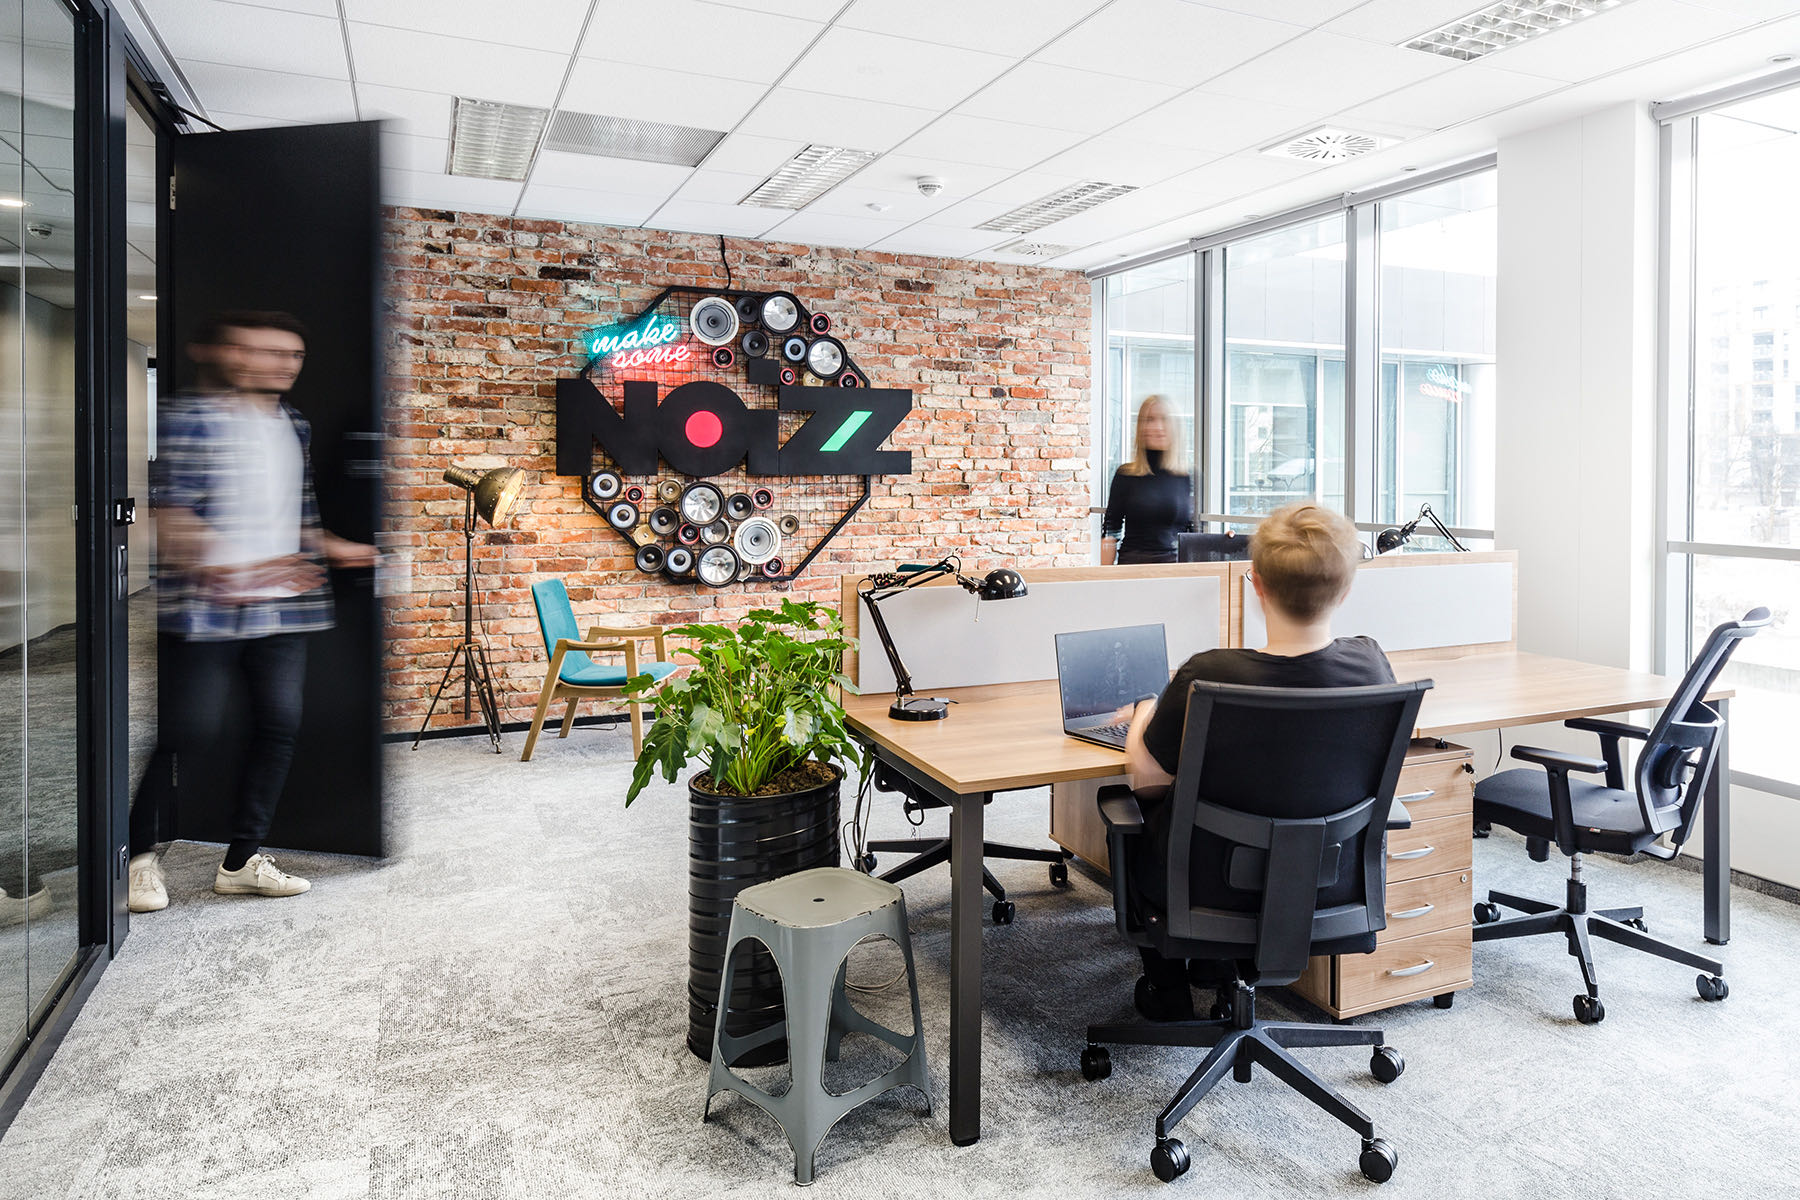 A Tour Of Ringier Axel Springer's Neon Innovation Hub In Warsaw